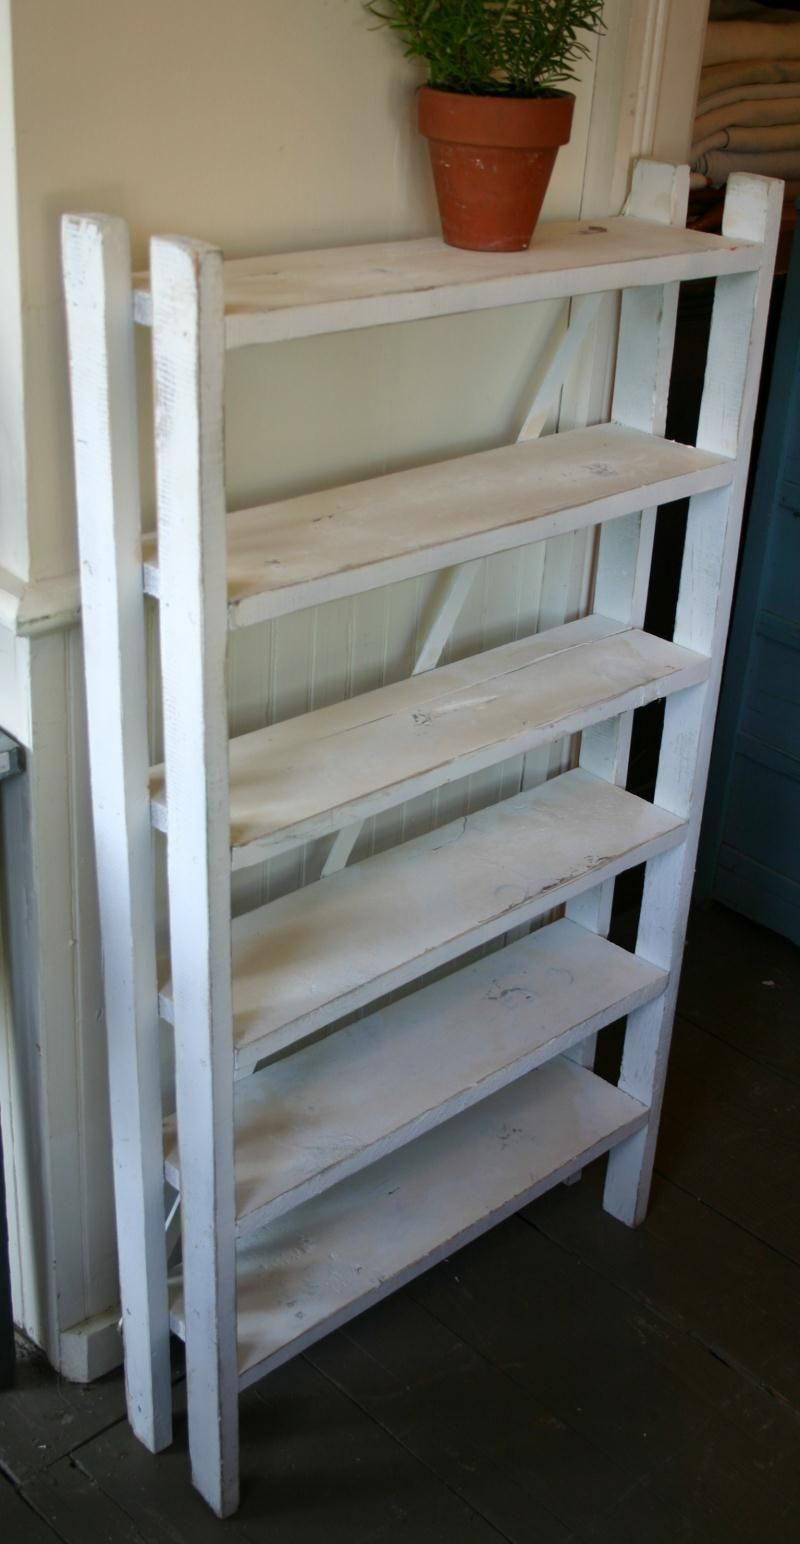 Wood Shelving In A Pantry The Shelves Were Inspired Buy